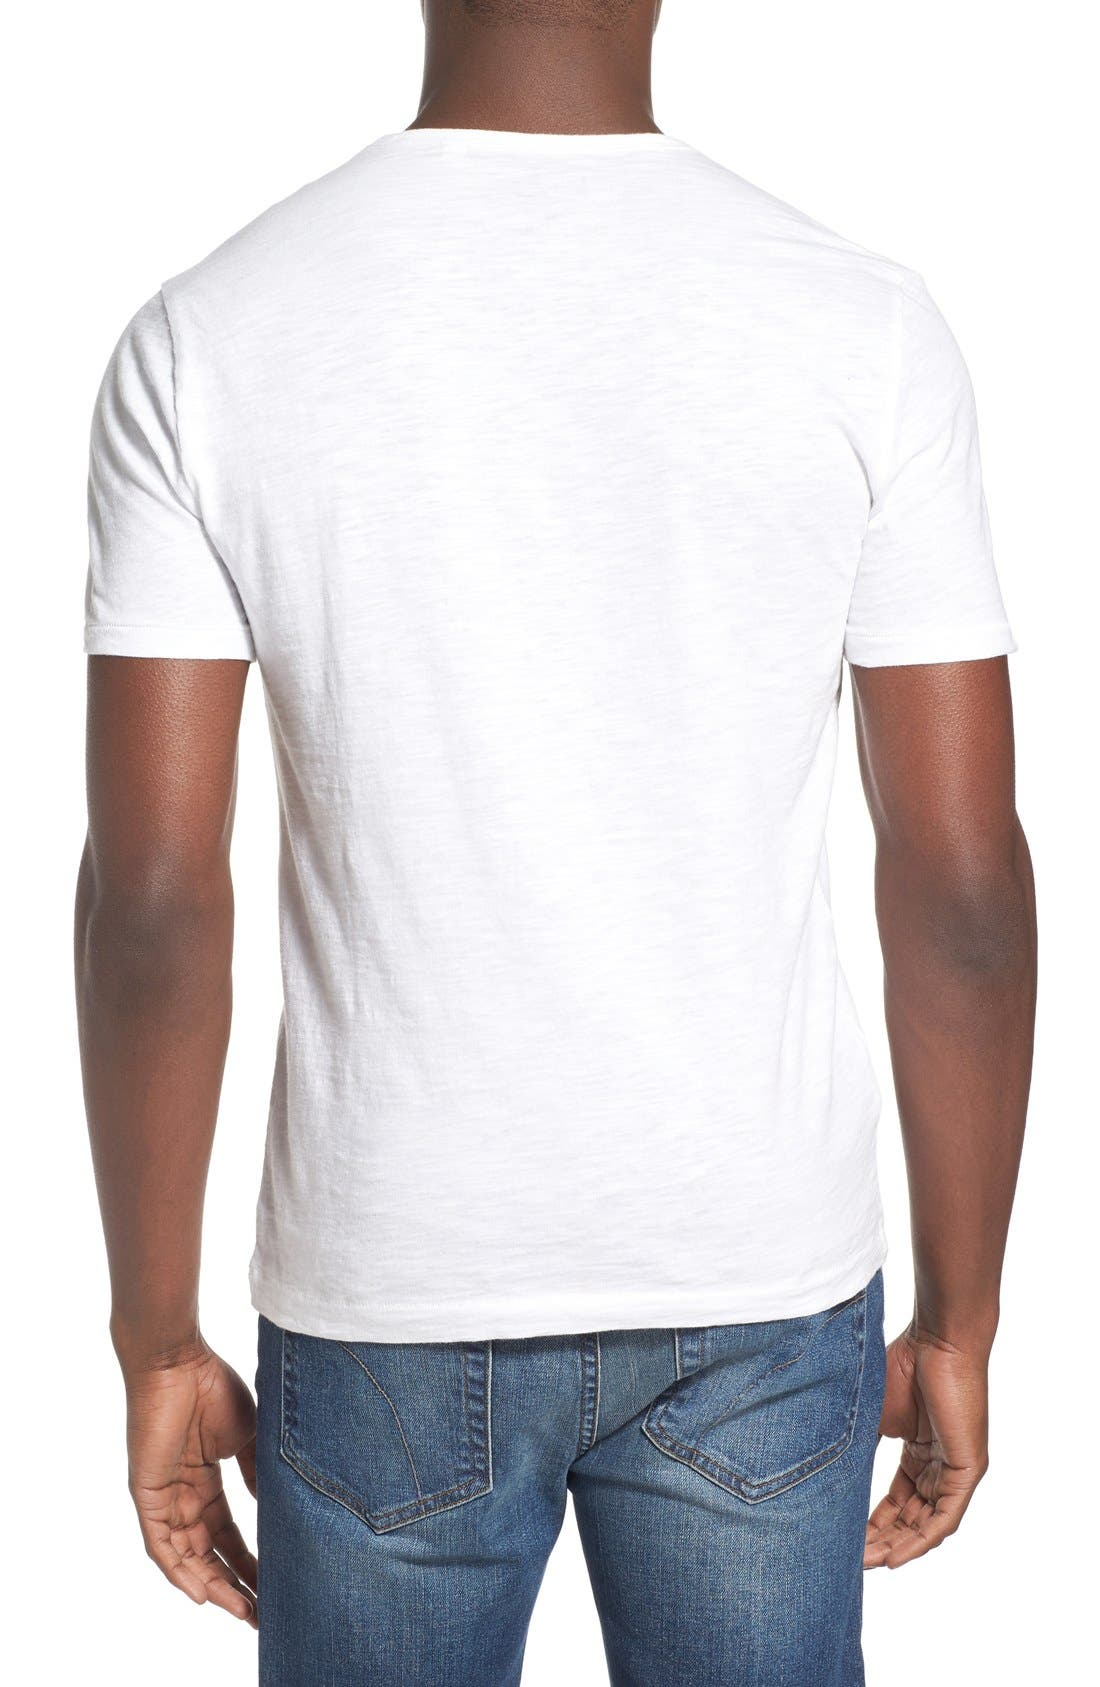 Alternate Image 2  - Original Penguin 'Bing' V-Neck Pocket T-Shirt